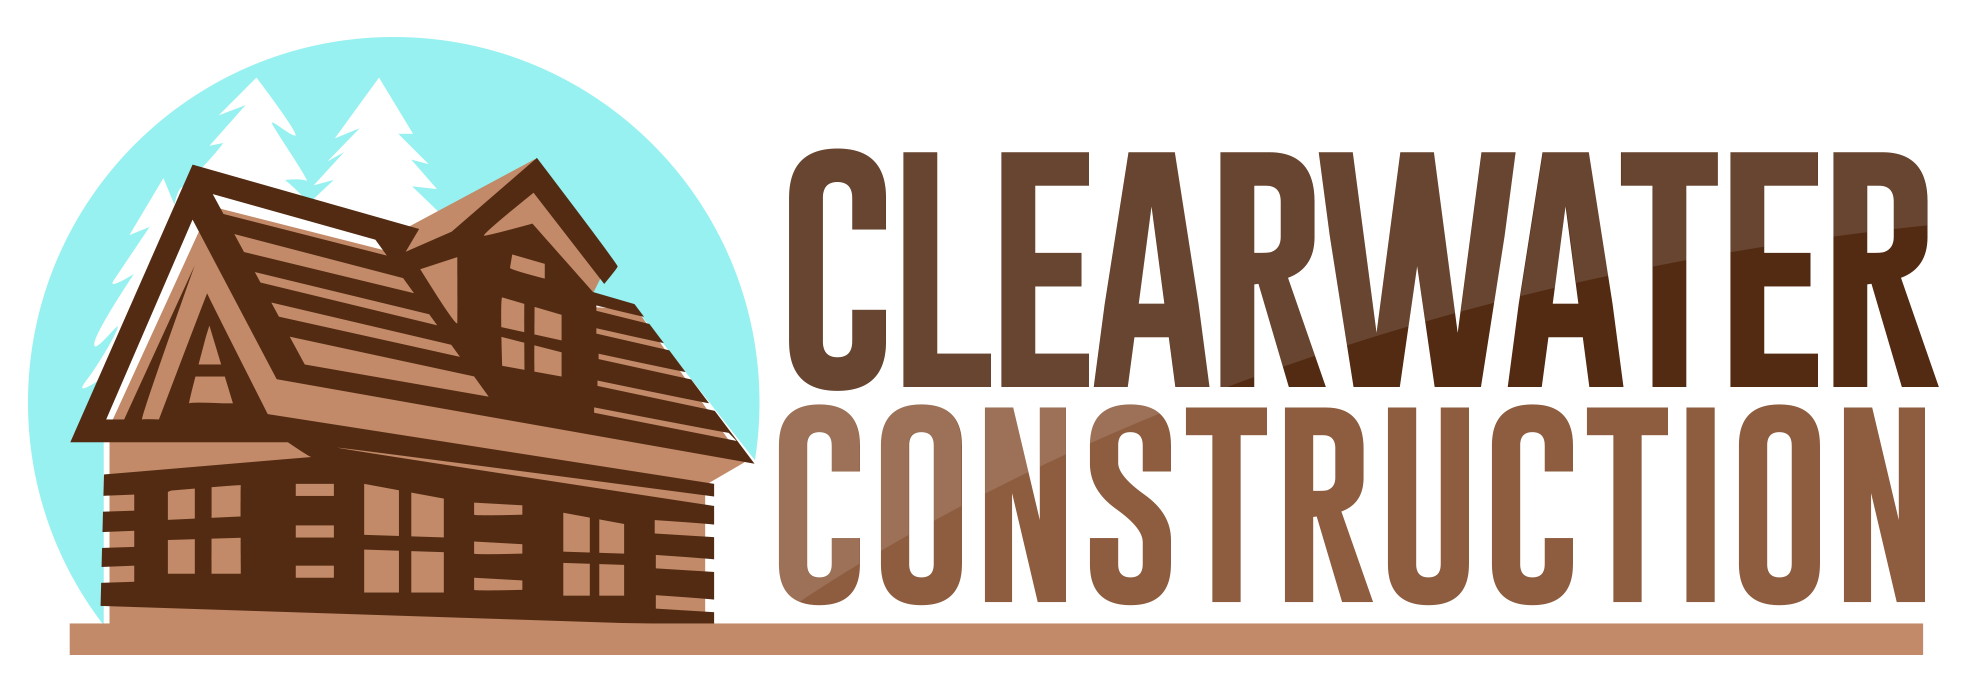 Clearwater Construction